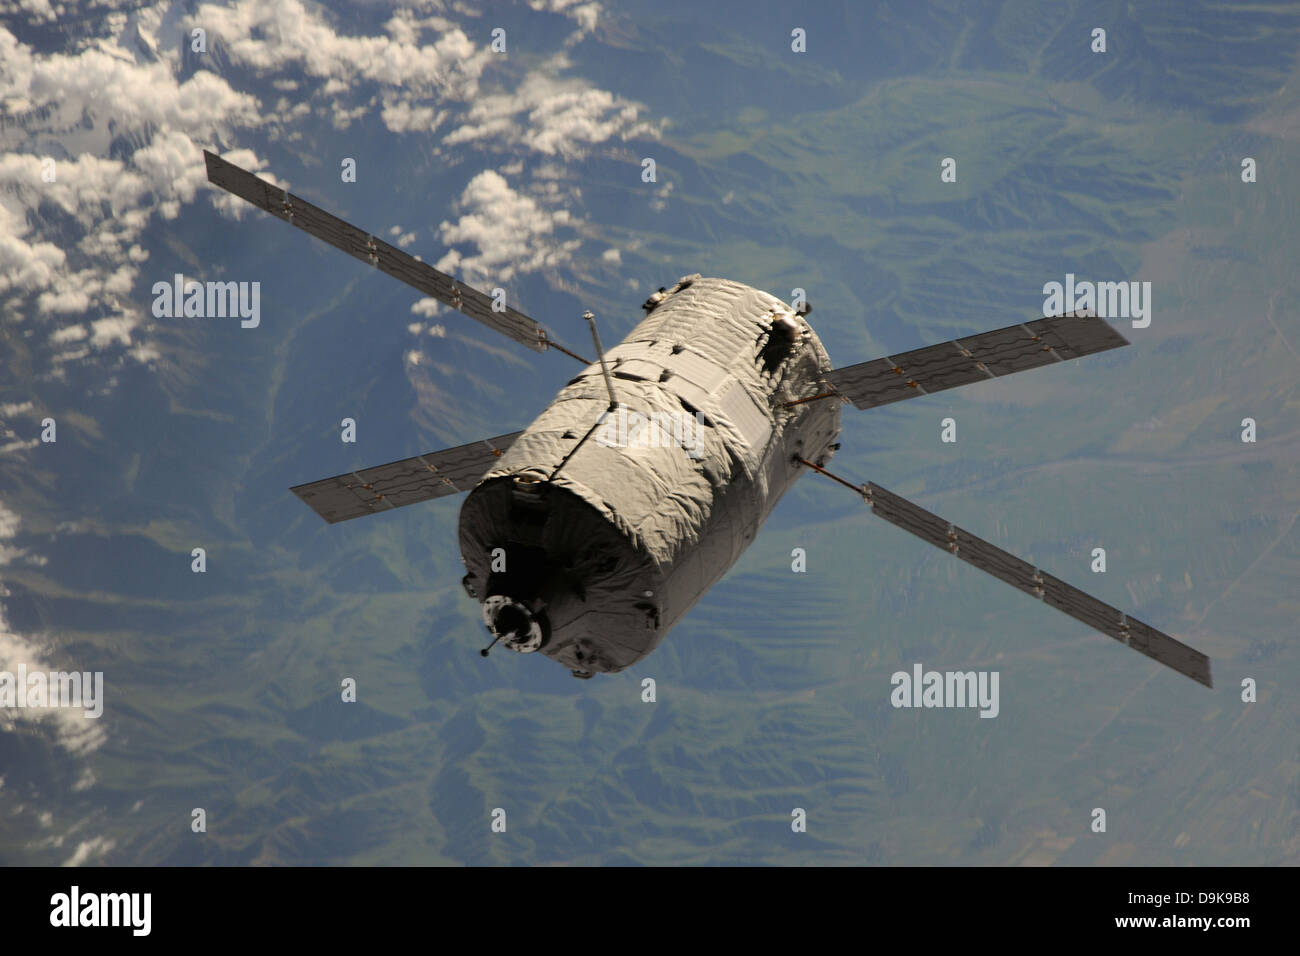 European Space Agency supply and support ferry the Automated Transfer Vehicle called Albert Einstein approaches - Stock Image